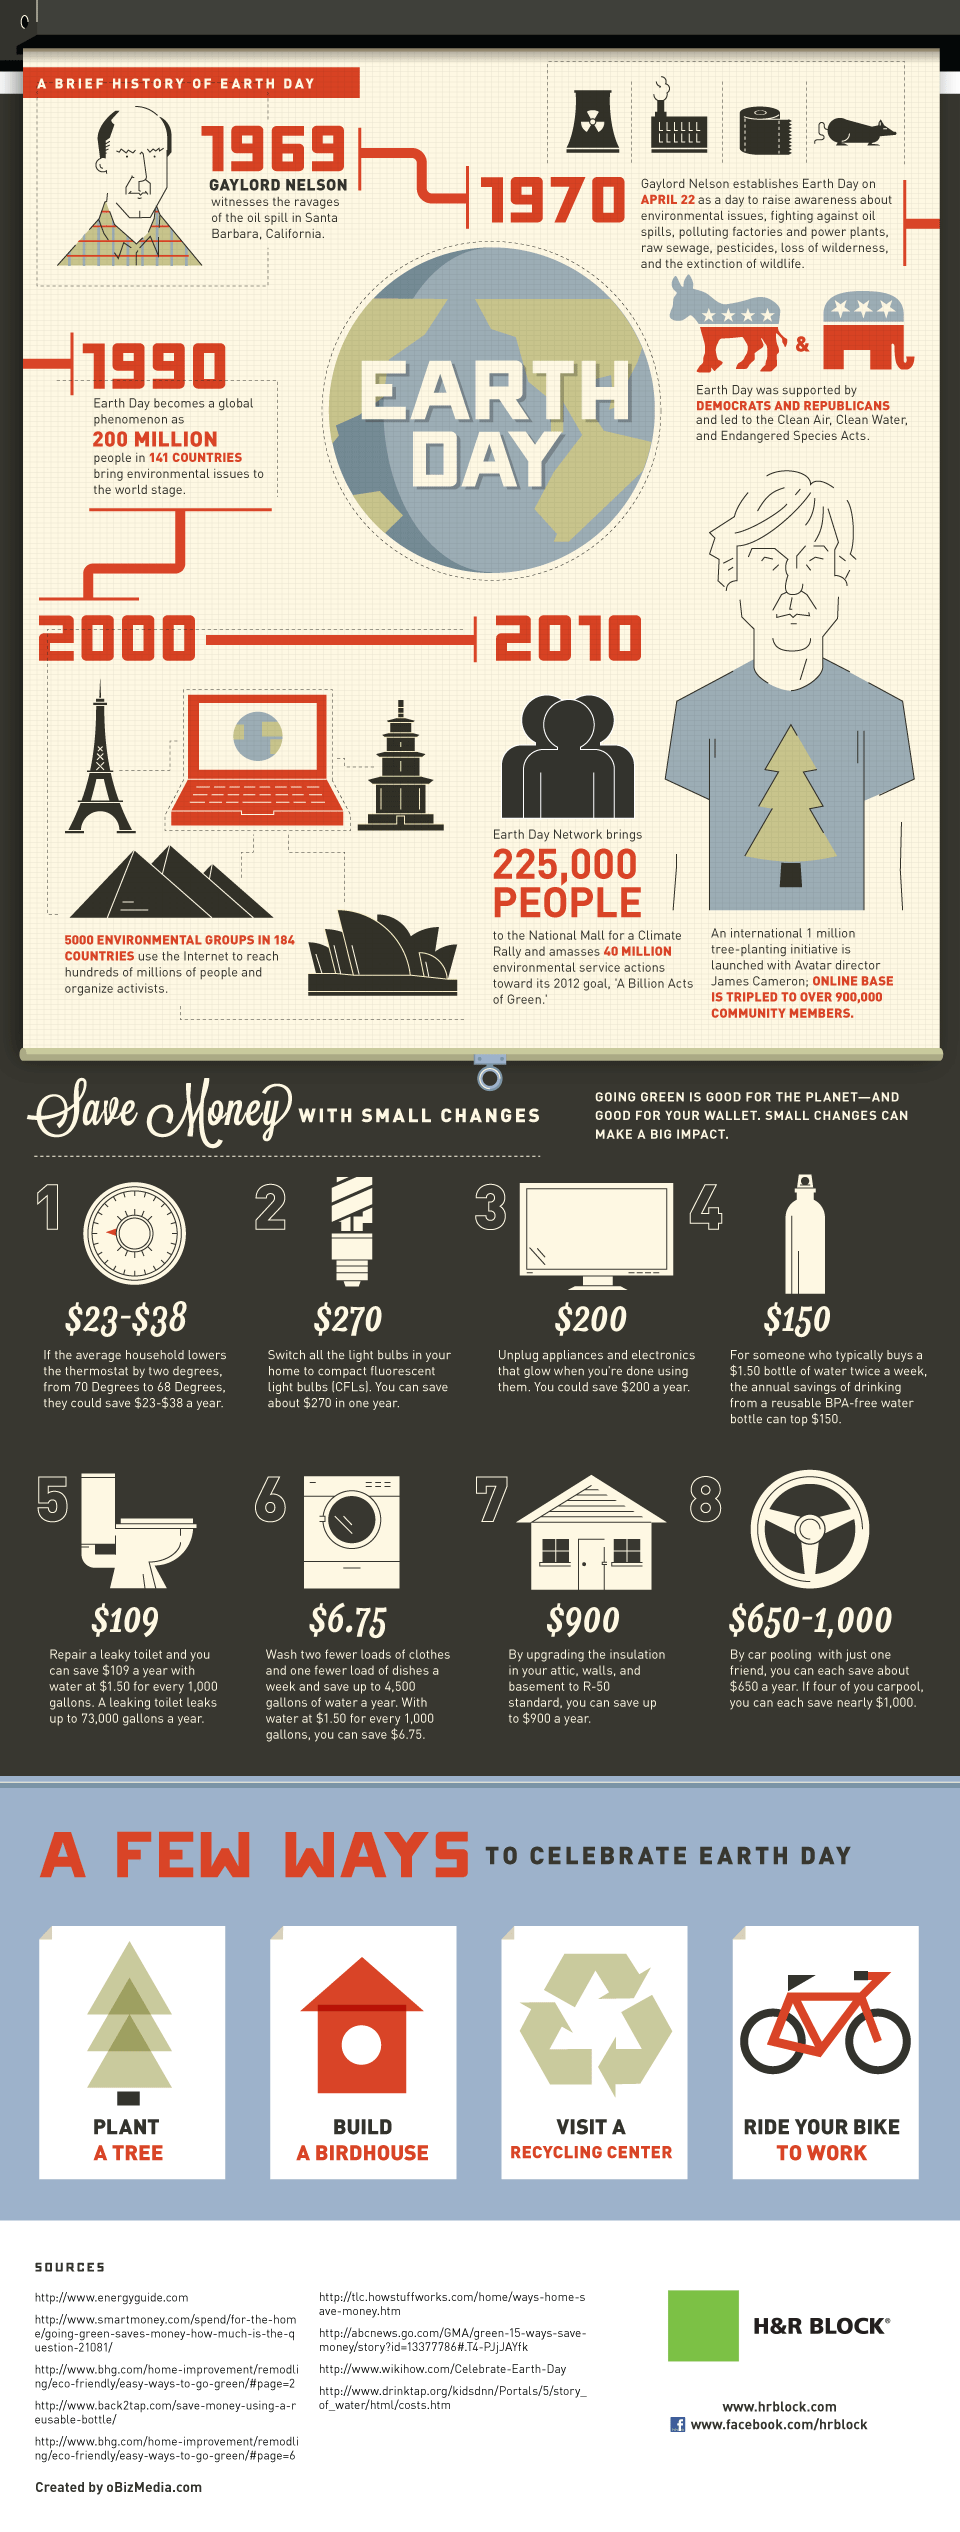 Earthday 2012 #infographic Learn what this day is all about!